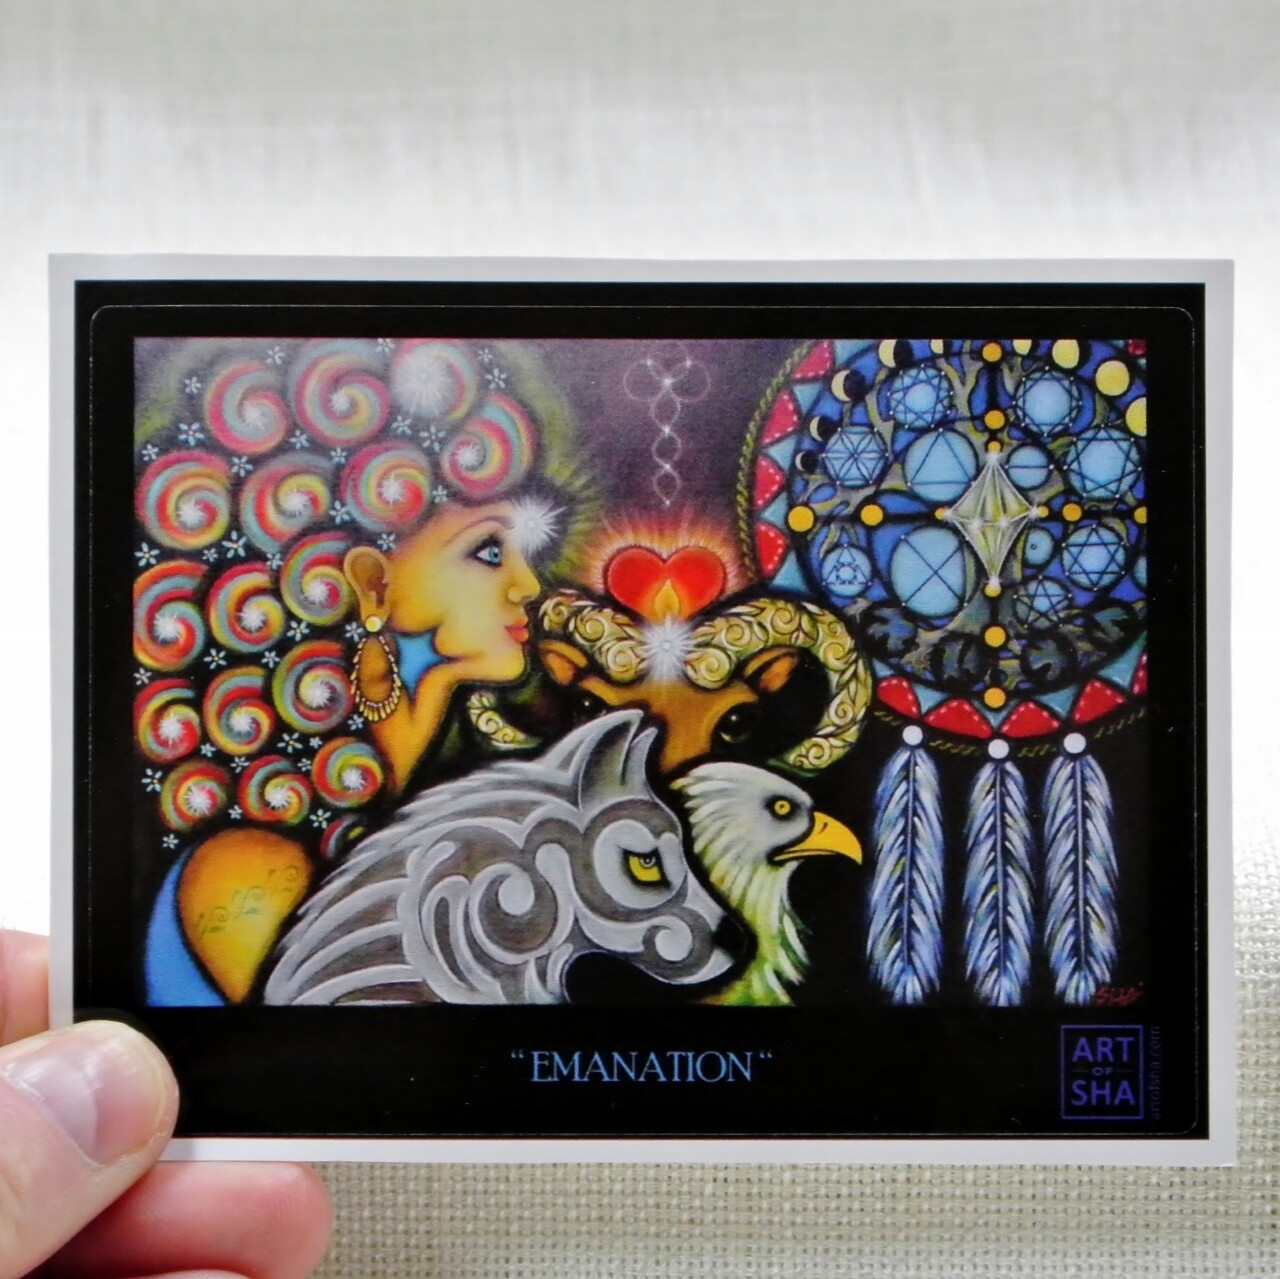 """Emanation"" Sticker"